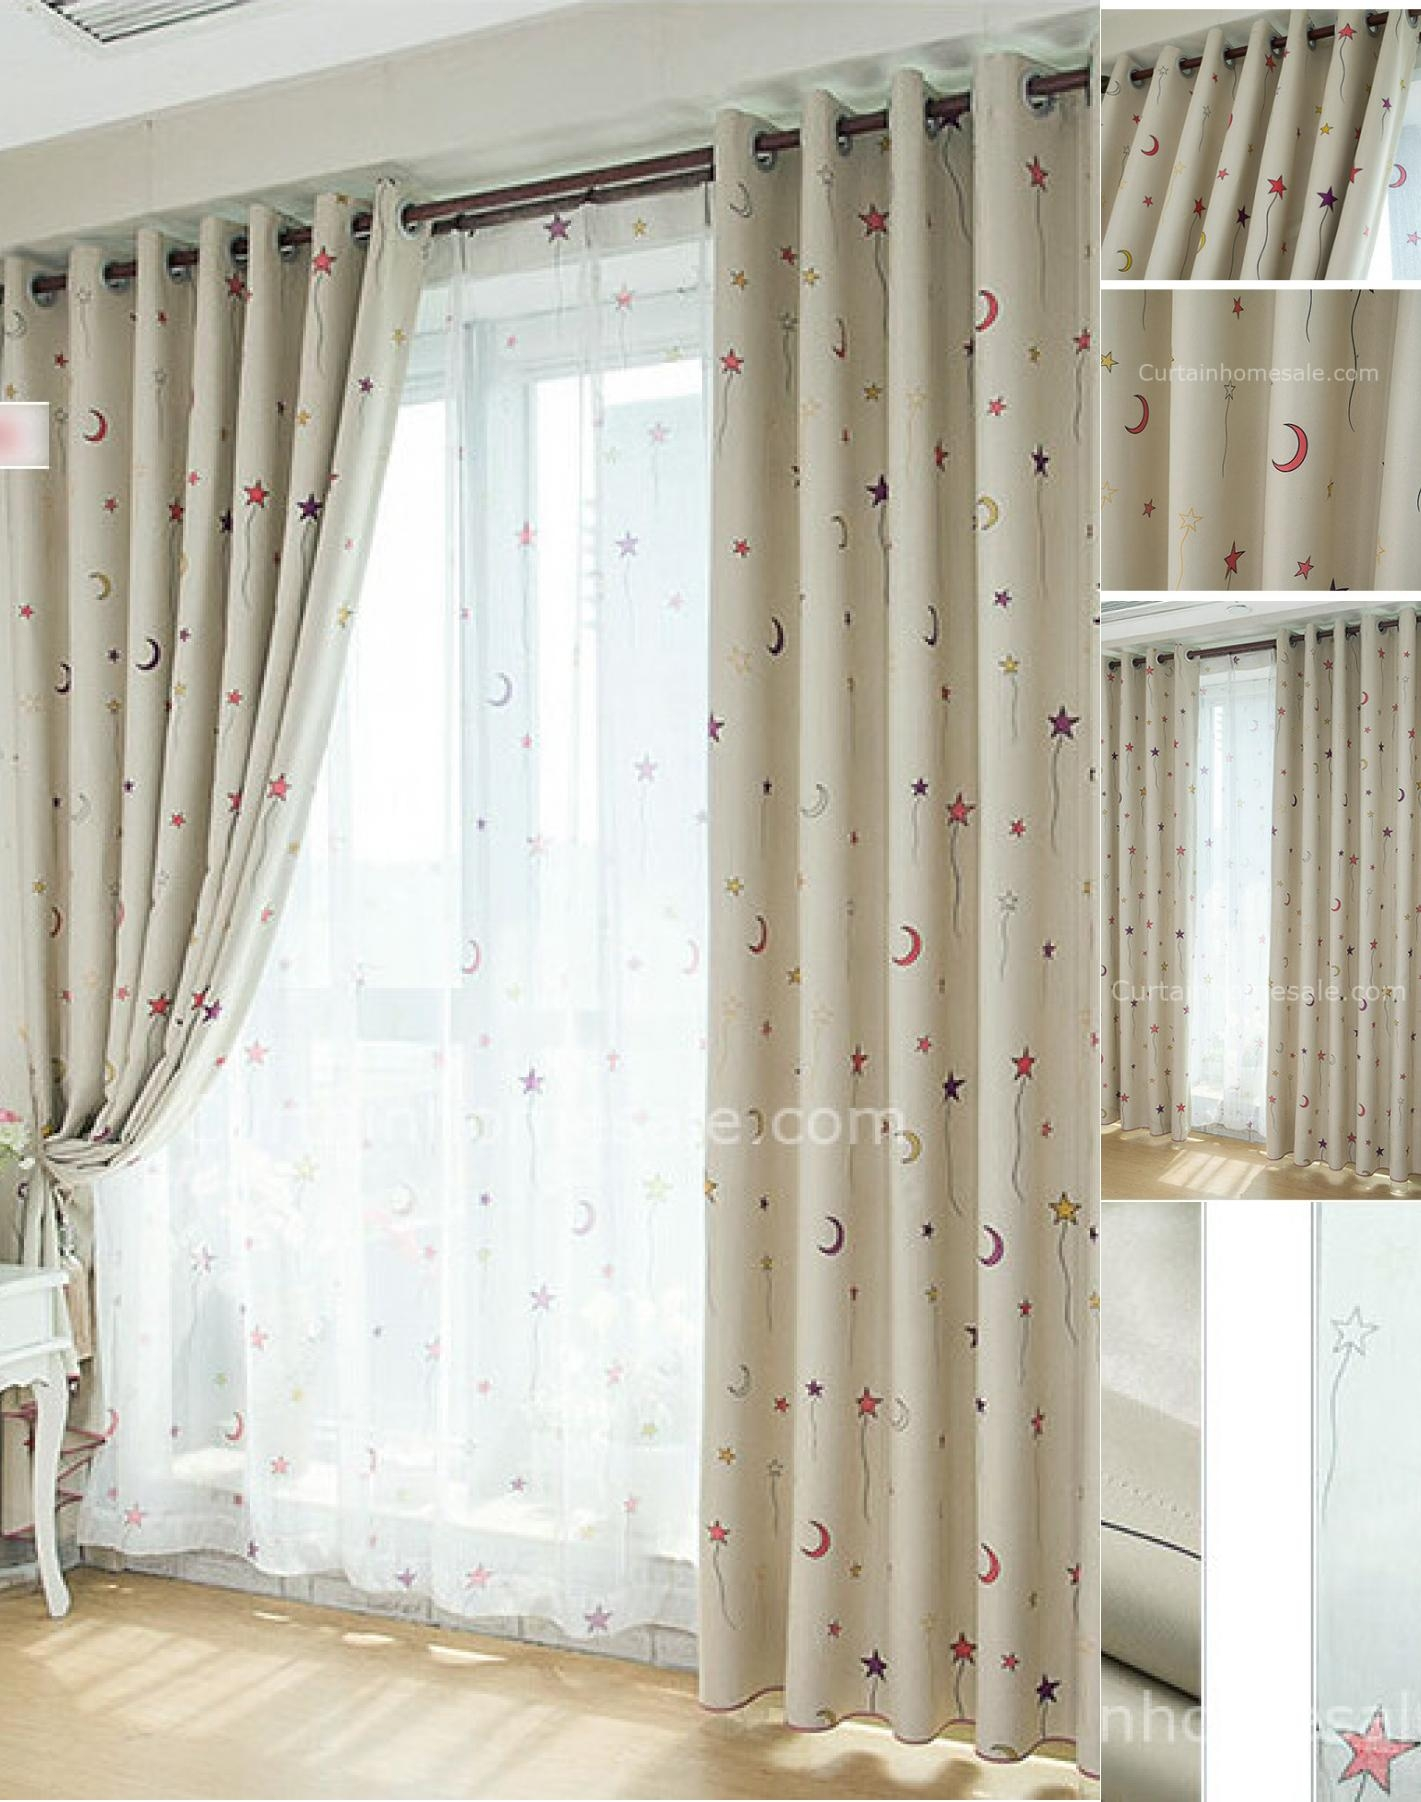 Lined Curtains Not Just A Covering Egovjournal Home With Regard To Thermal Lined Drapes (Image 10 of 15)